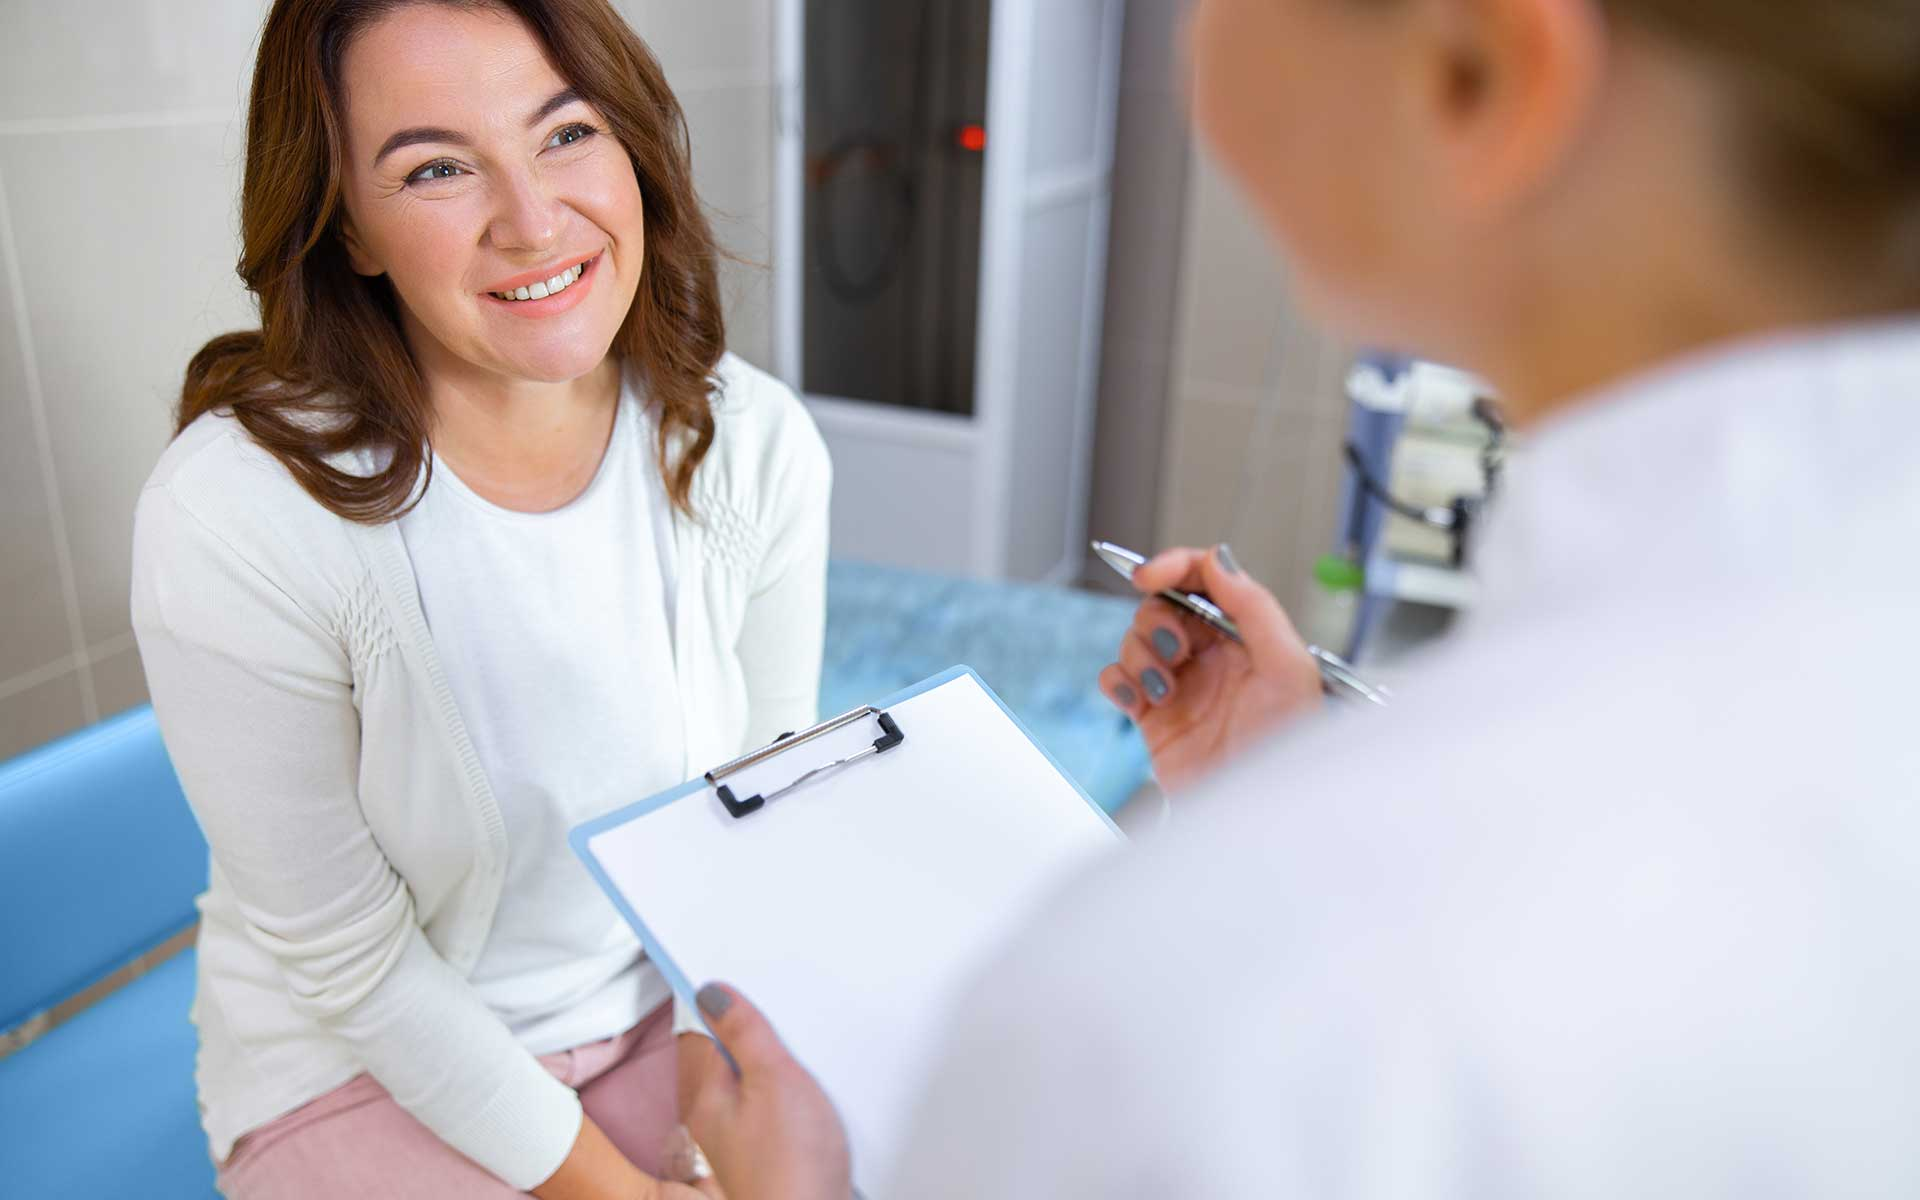 Patient in a Consulting Room